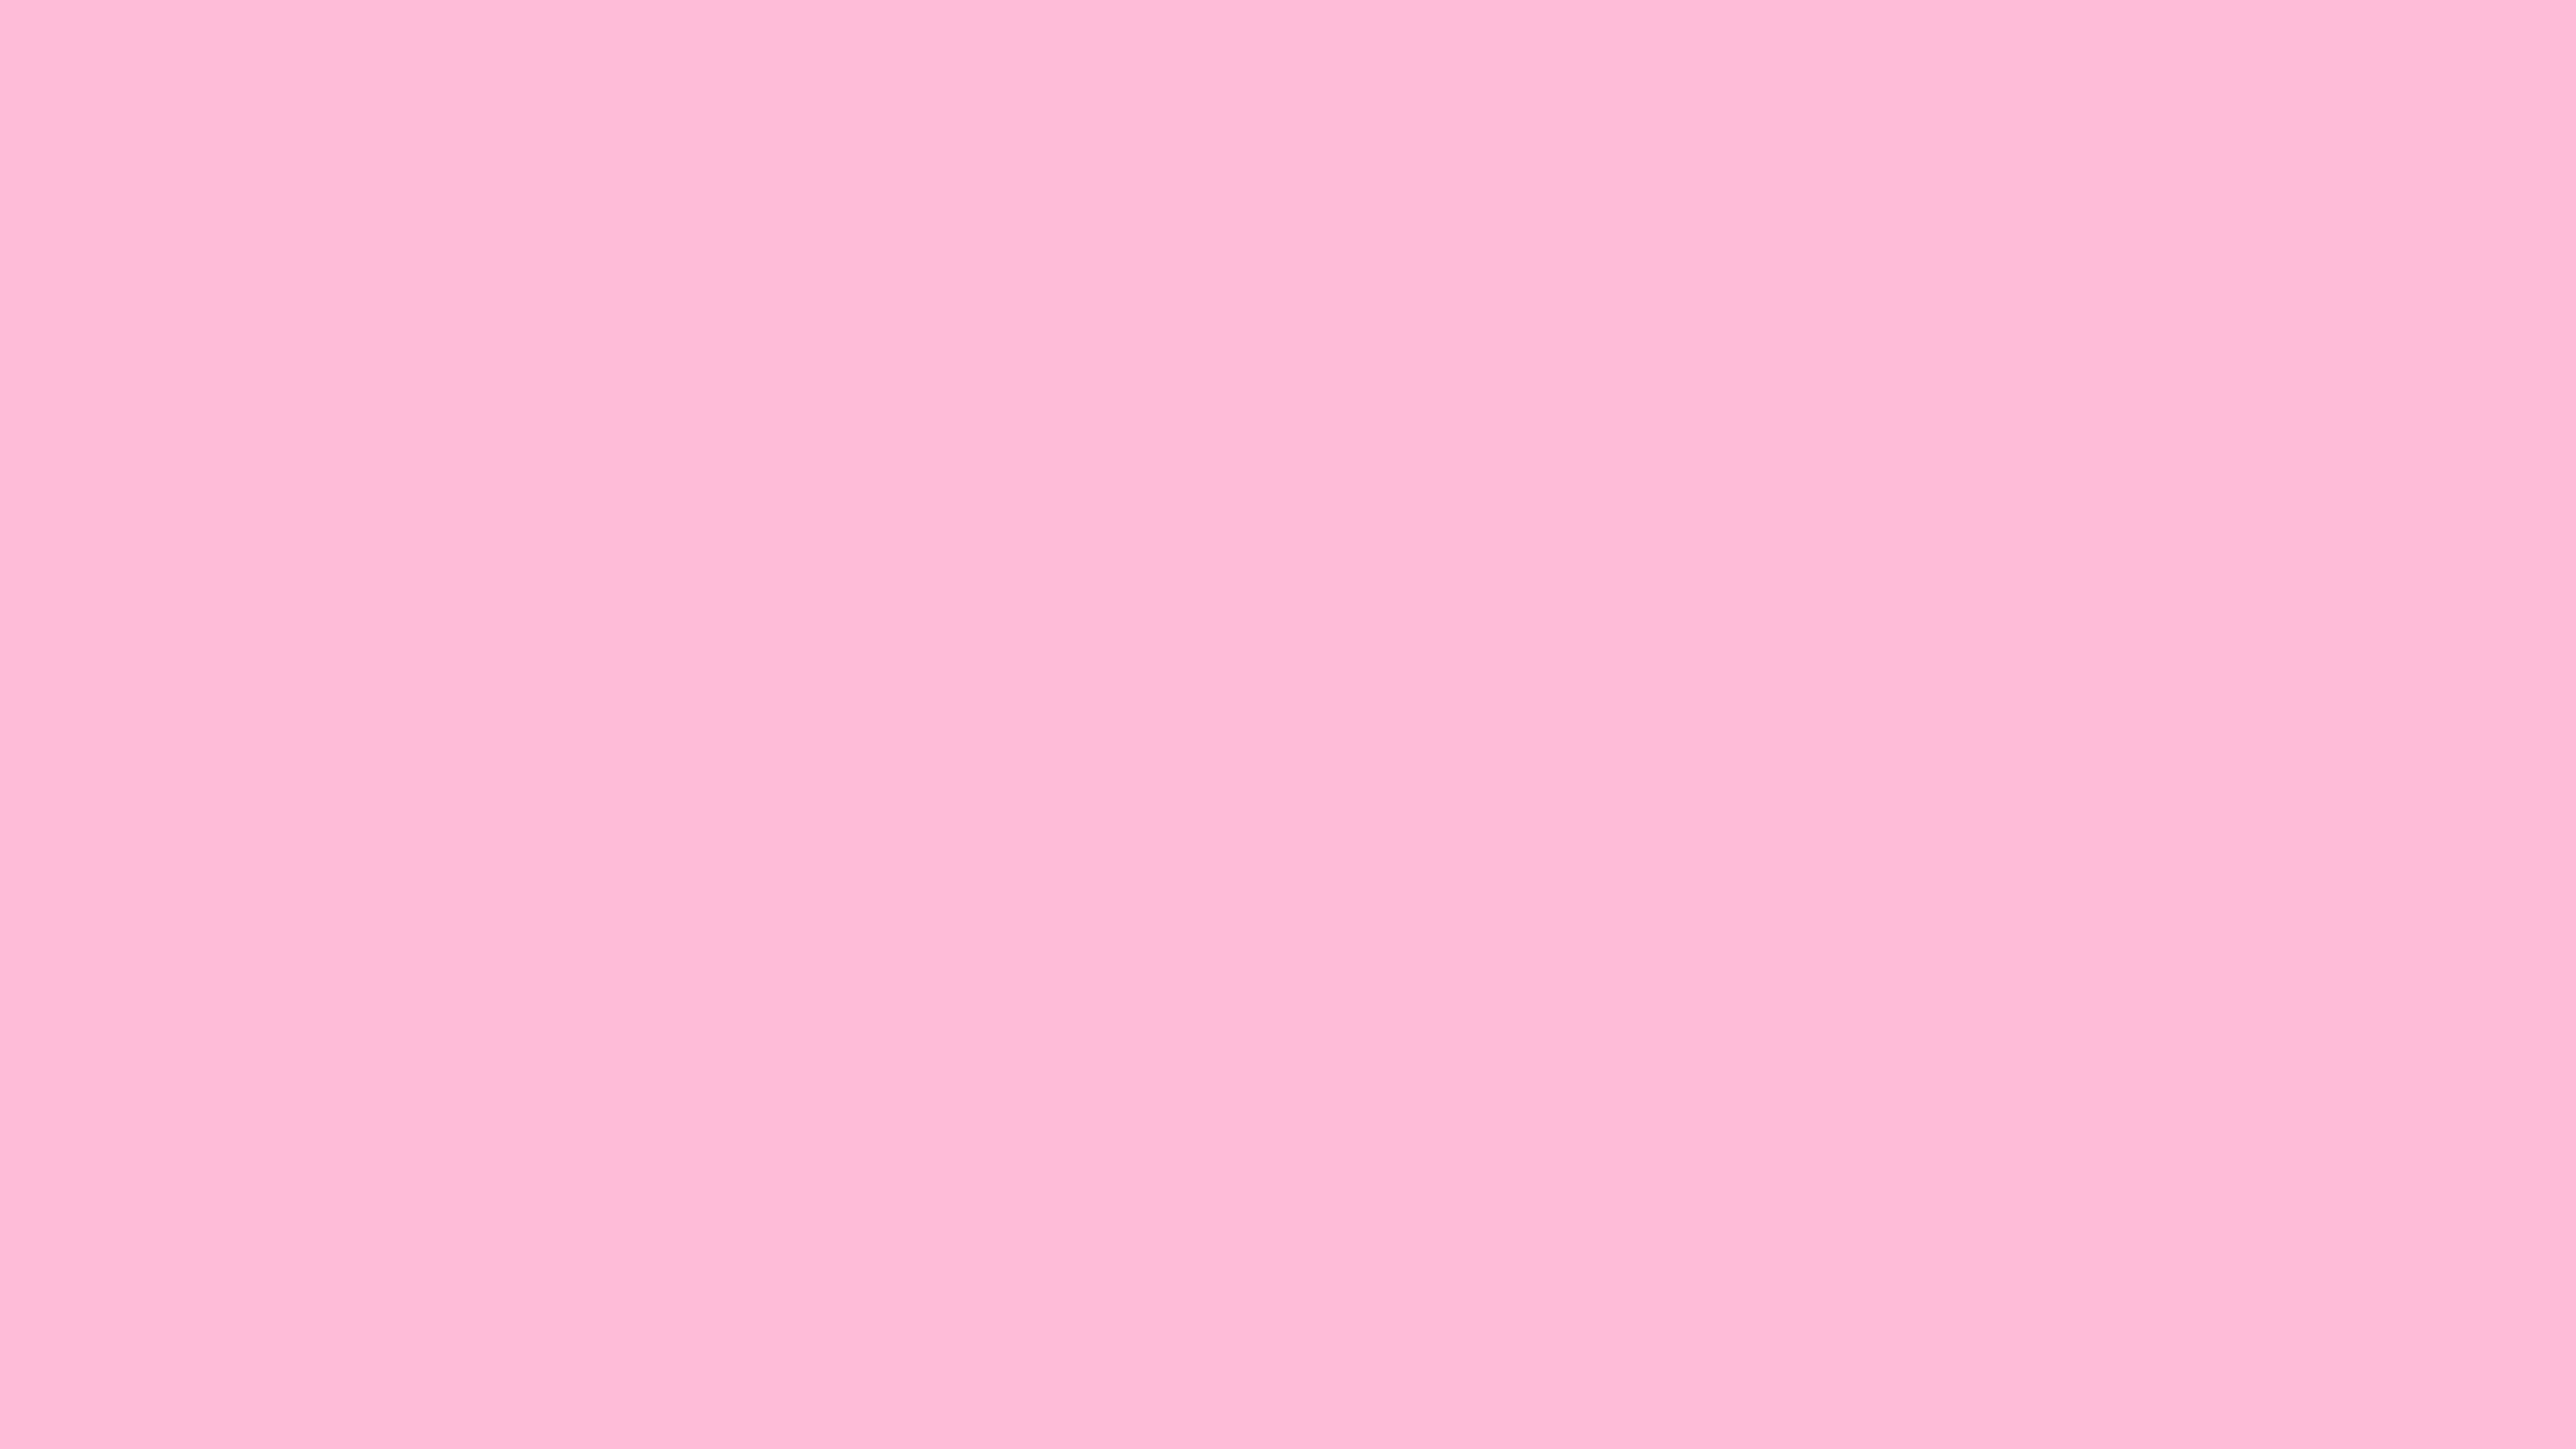 4096x2304 Cotton Candy Solid Color Background